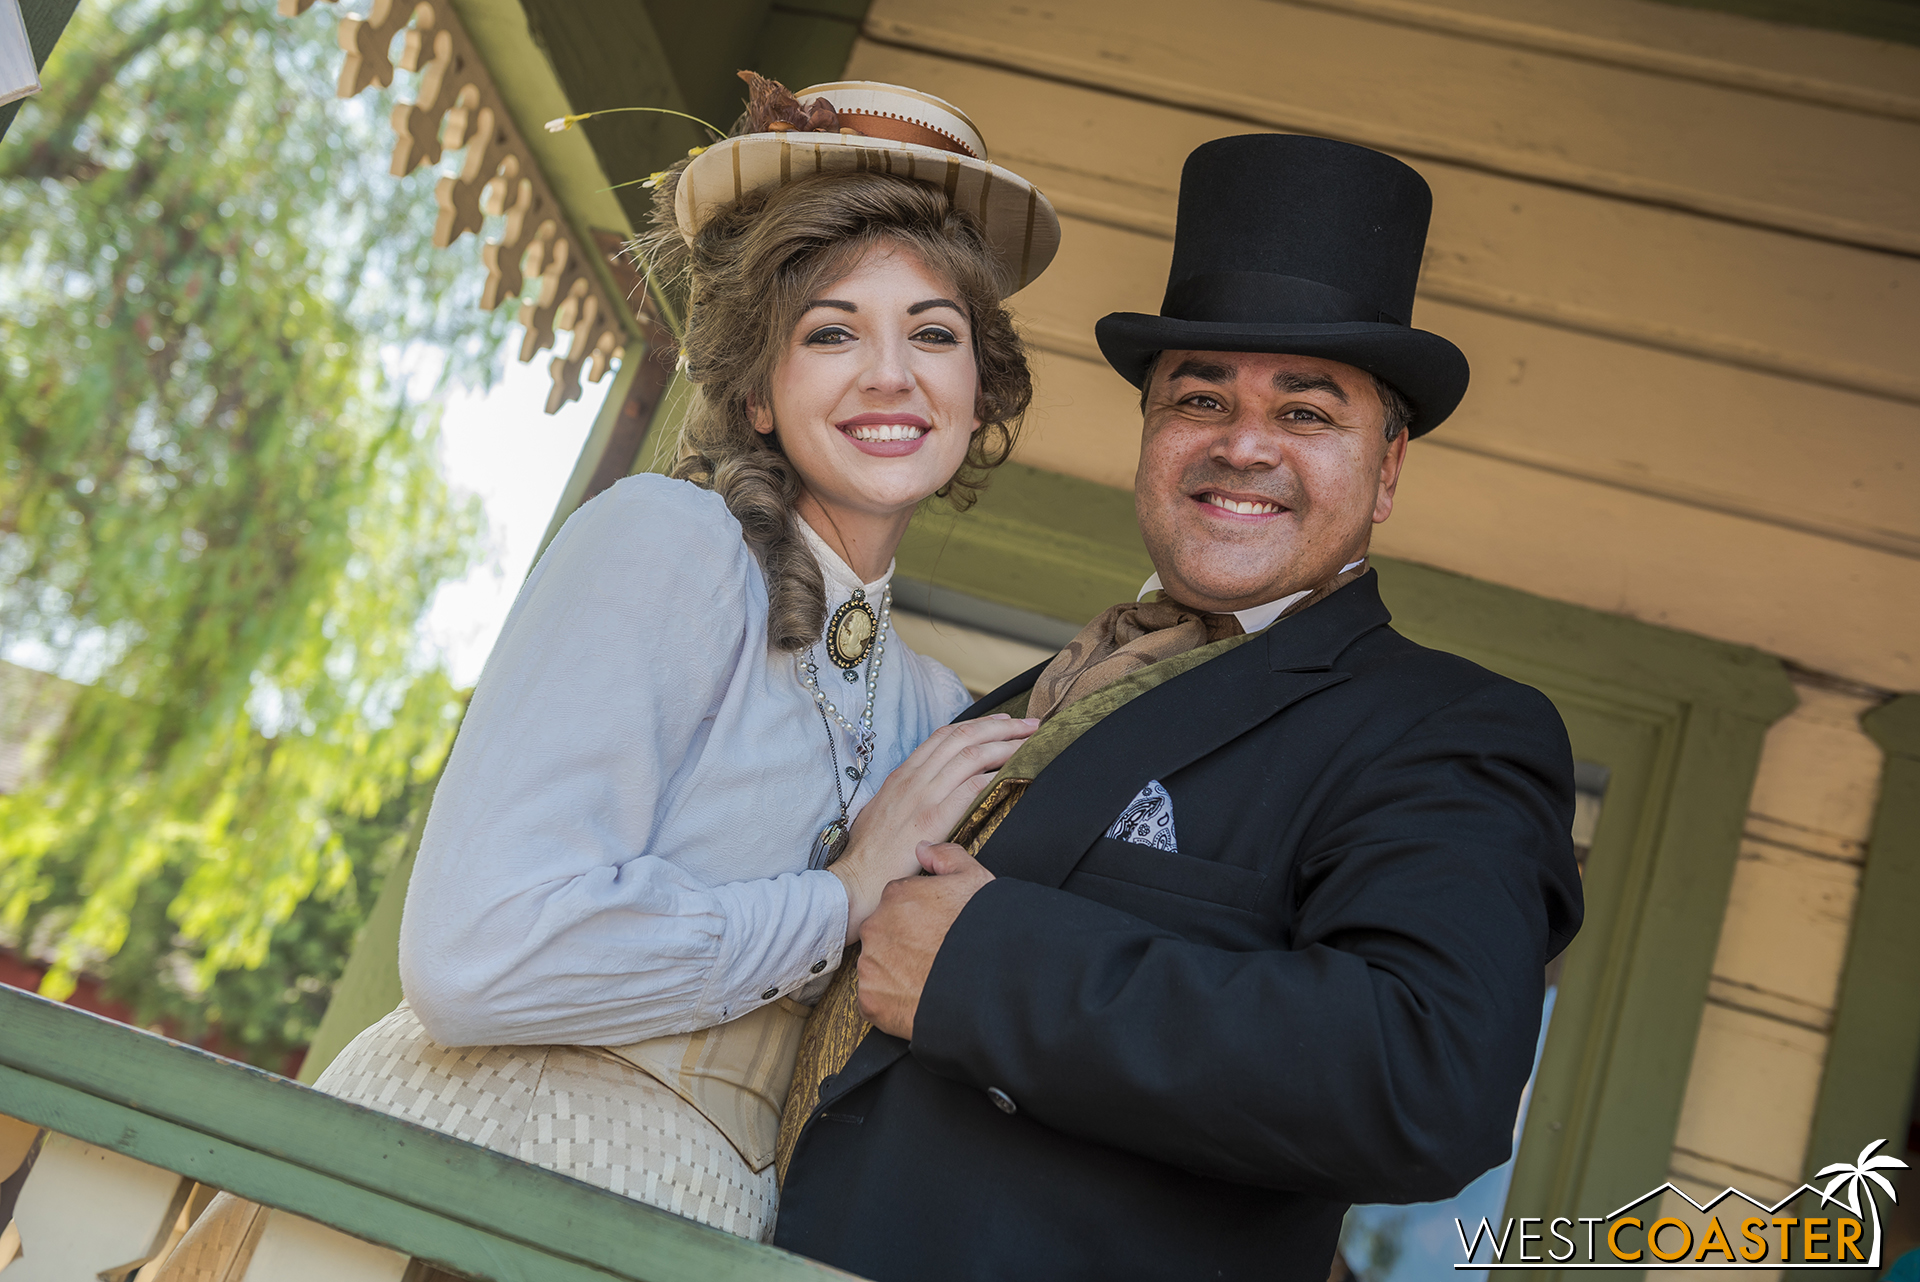 Mayor Horton Parnell and his lovely wife, Pearl, pose in front of Town Hall.